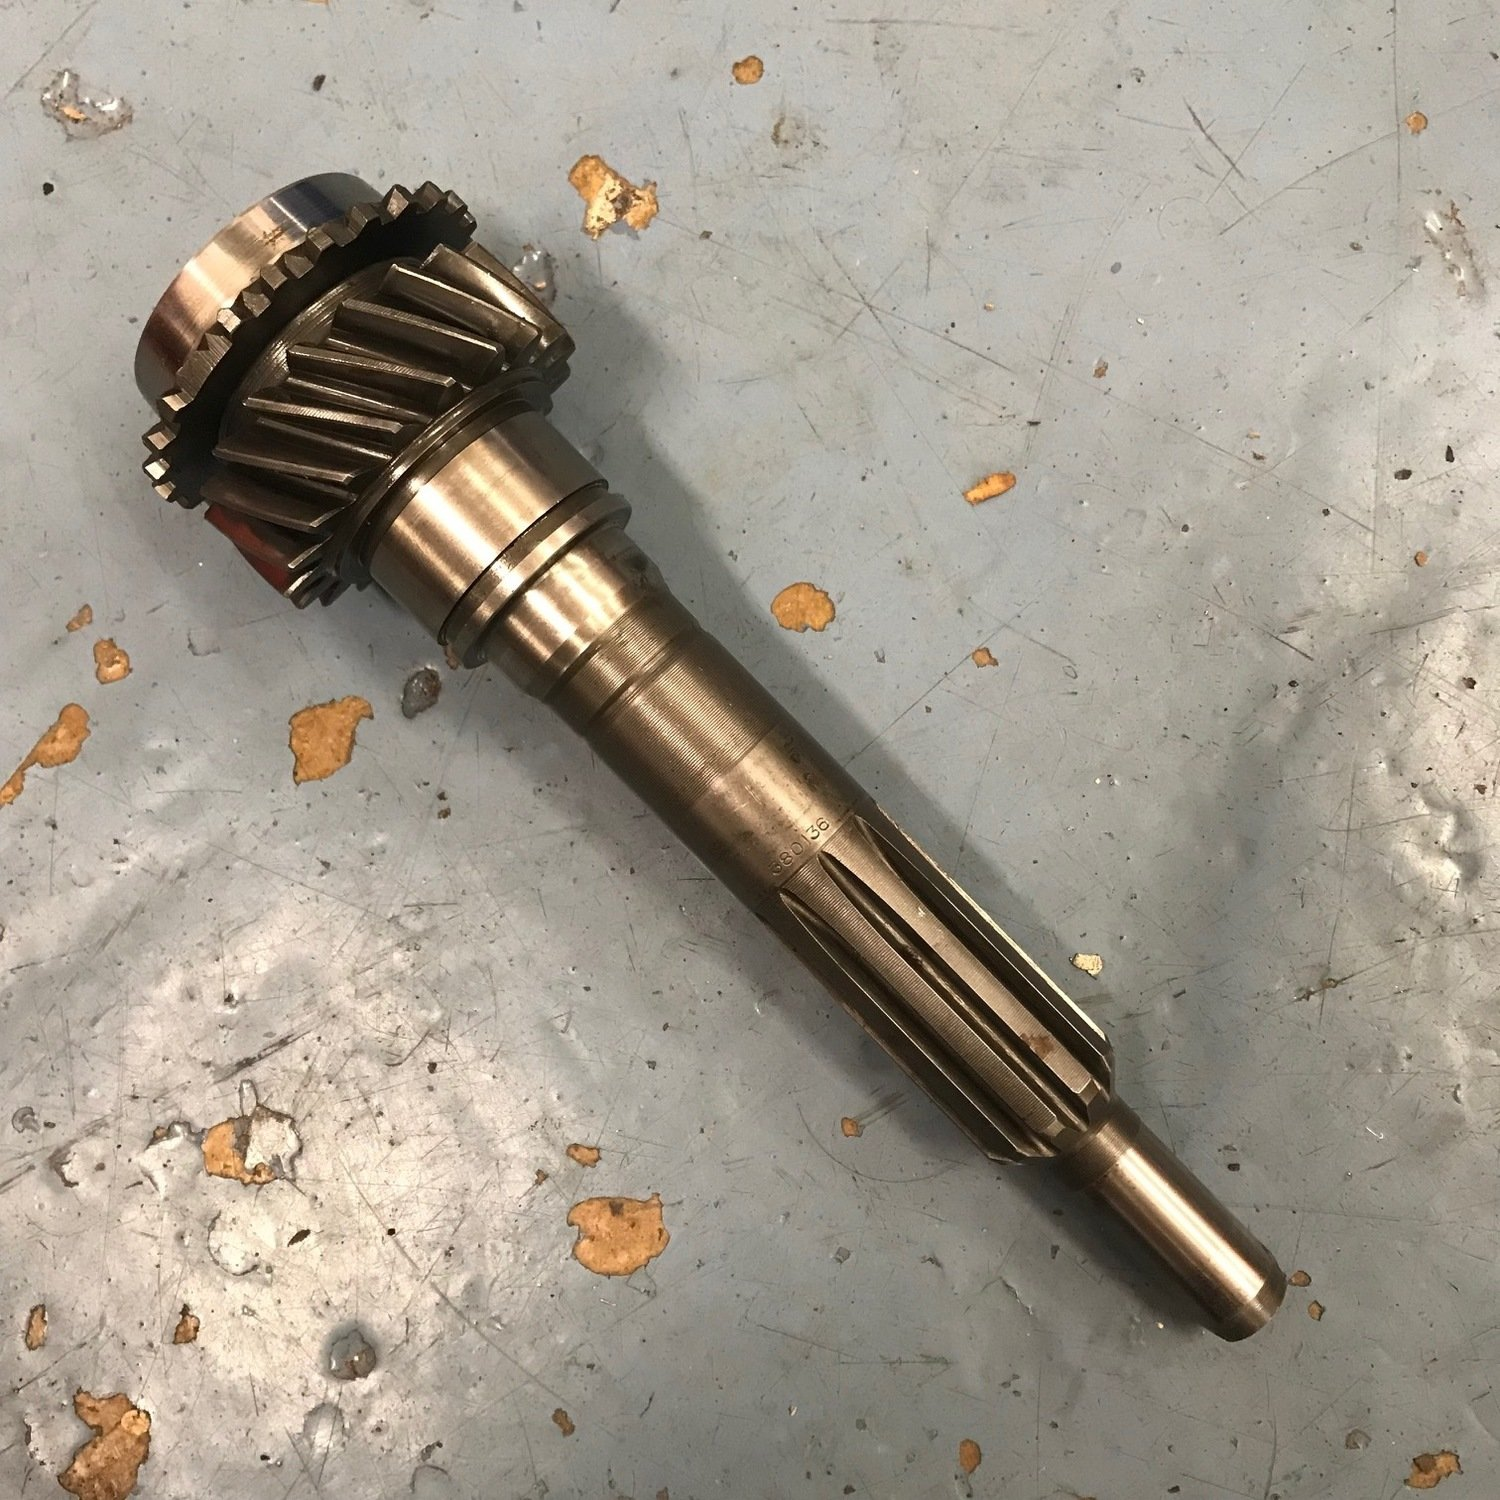 Volvo M40 1st motion shaft 19 tooth (used) 380136